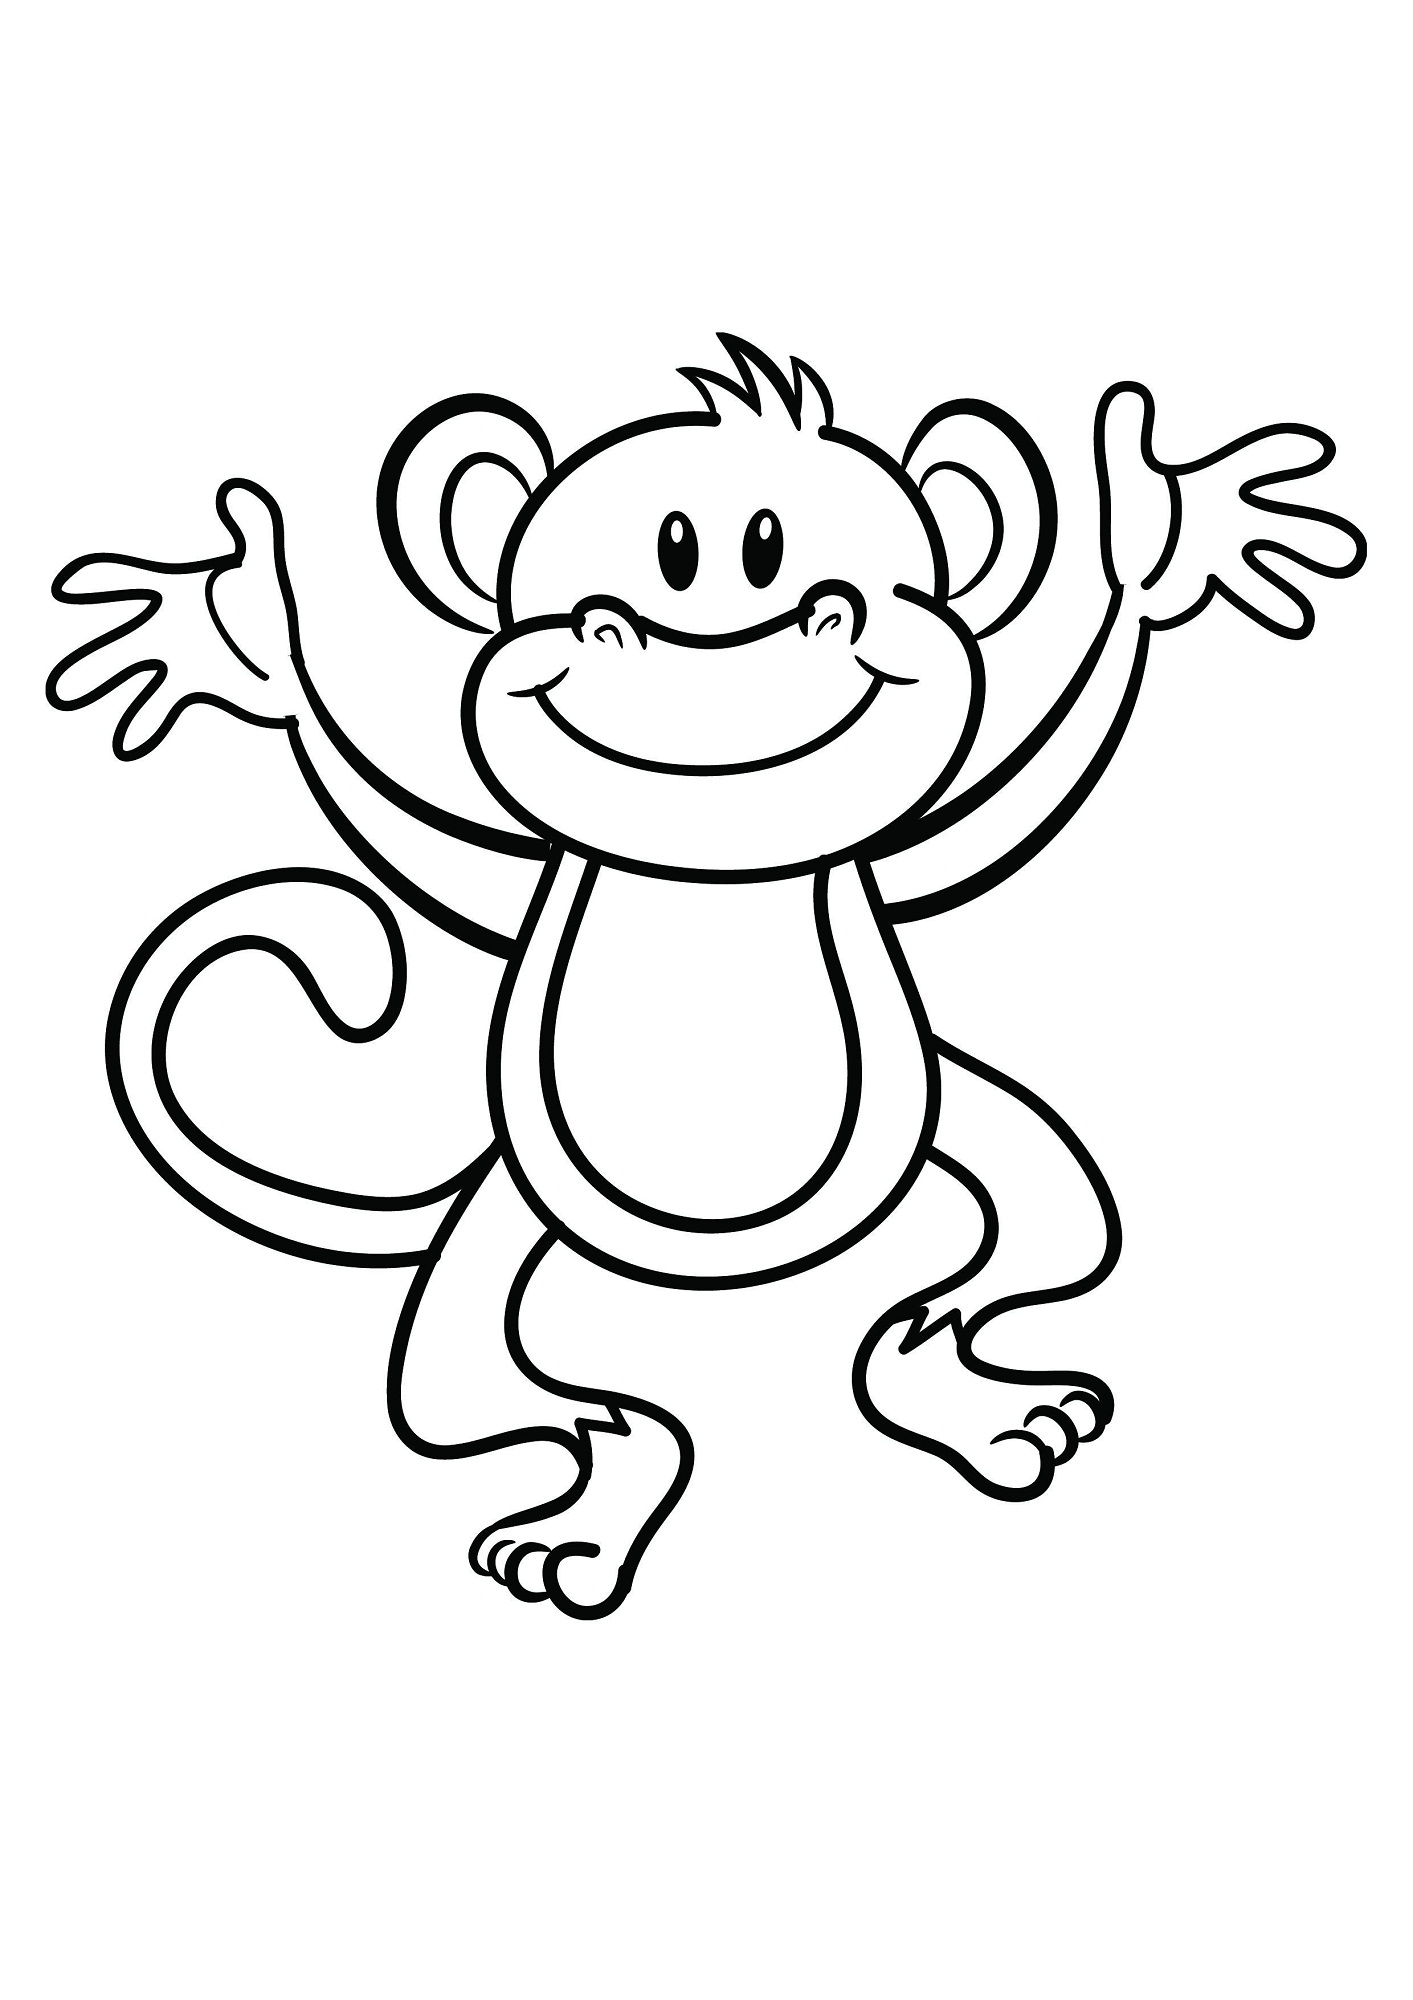 coloring picture of monkey monkeys to download for free monkeys kids coloring pages of picture monkey coloring